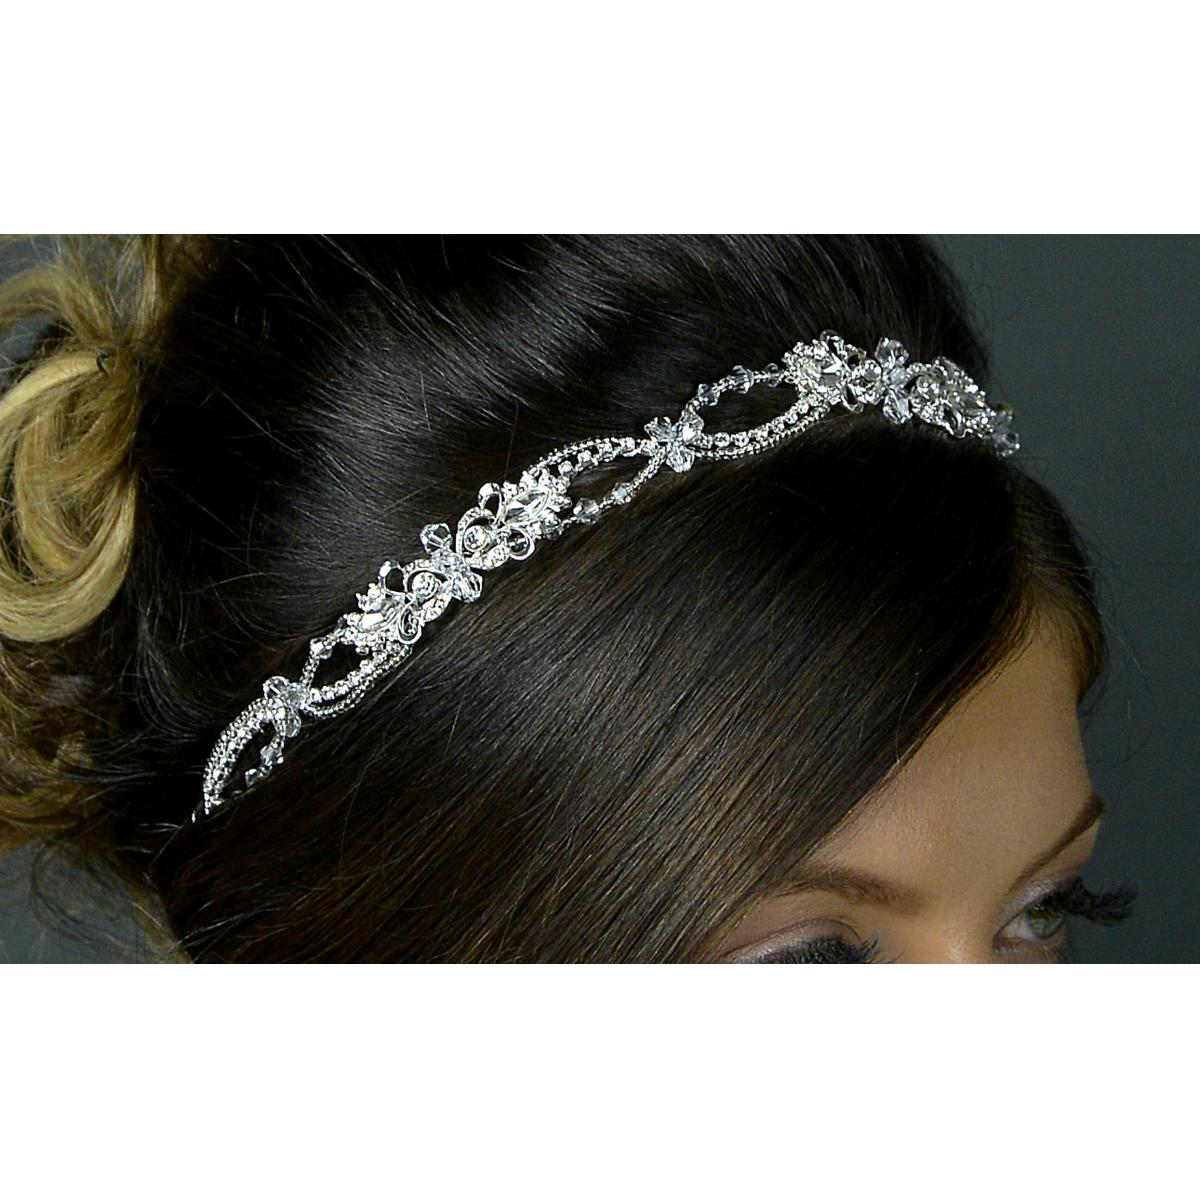 Twilight 'Gracelyn' Headband 1